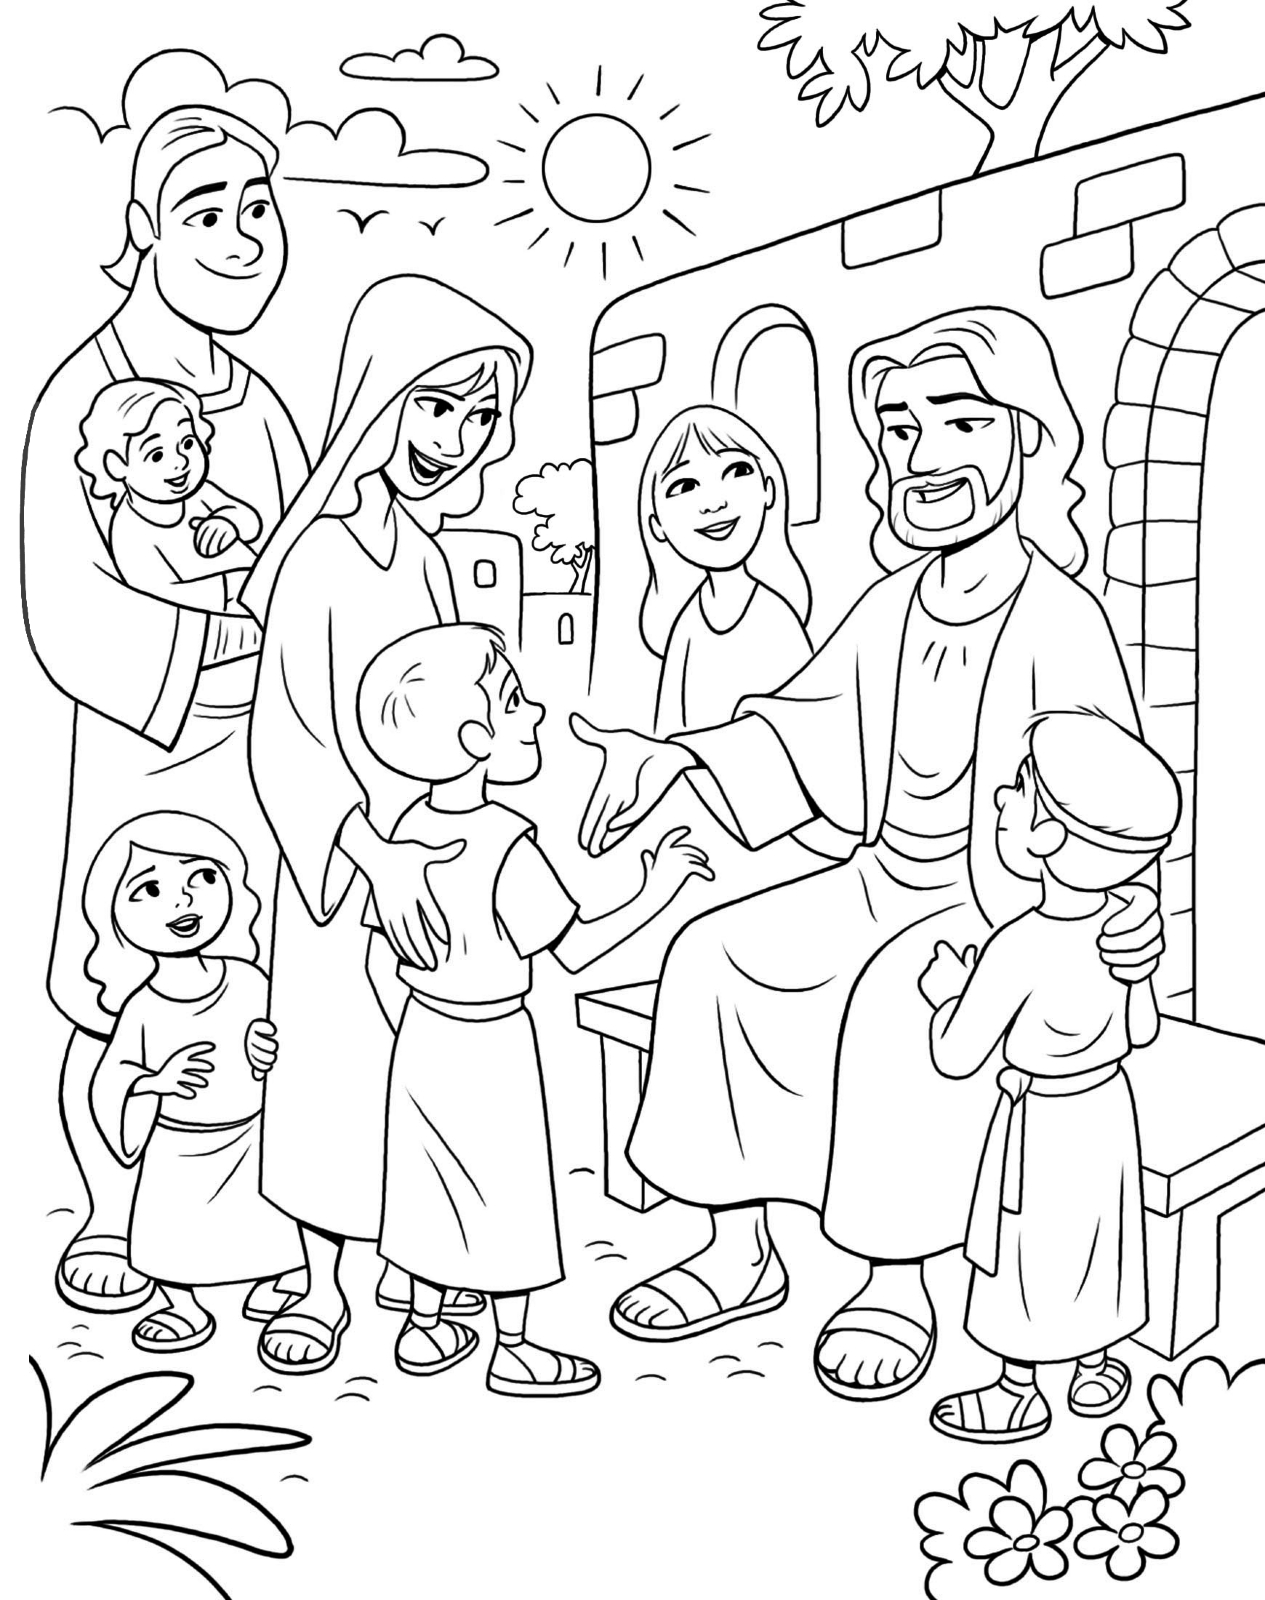 Christ Meeting The Children - Jesus-with-child-coloring-page